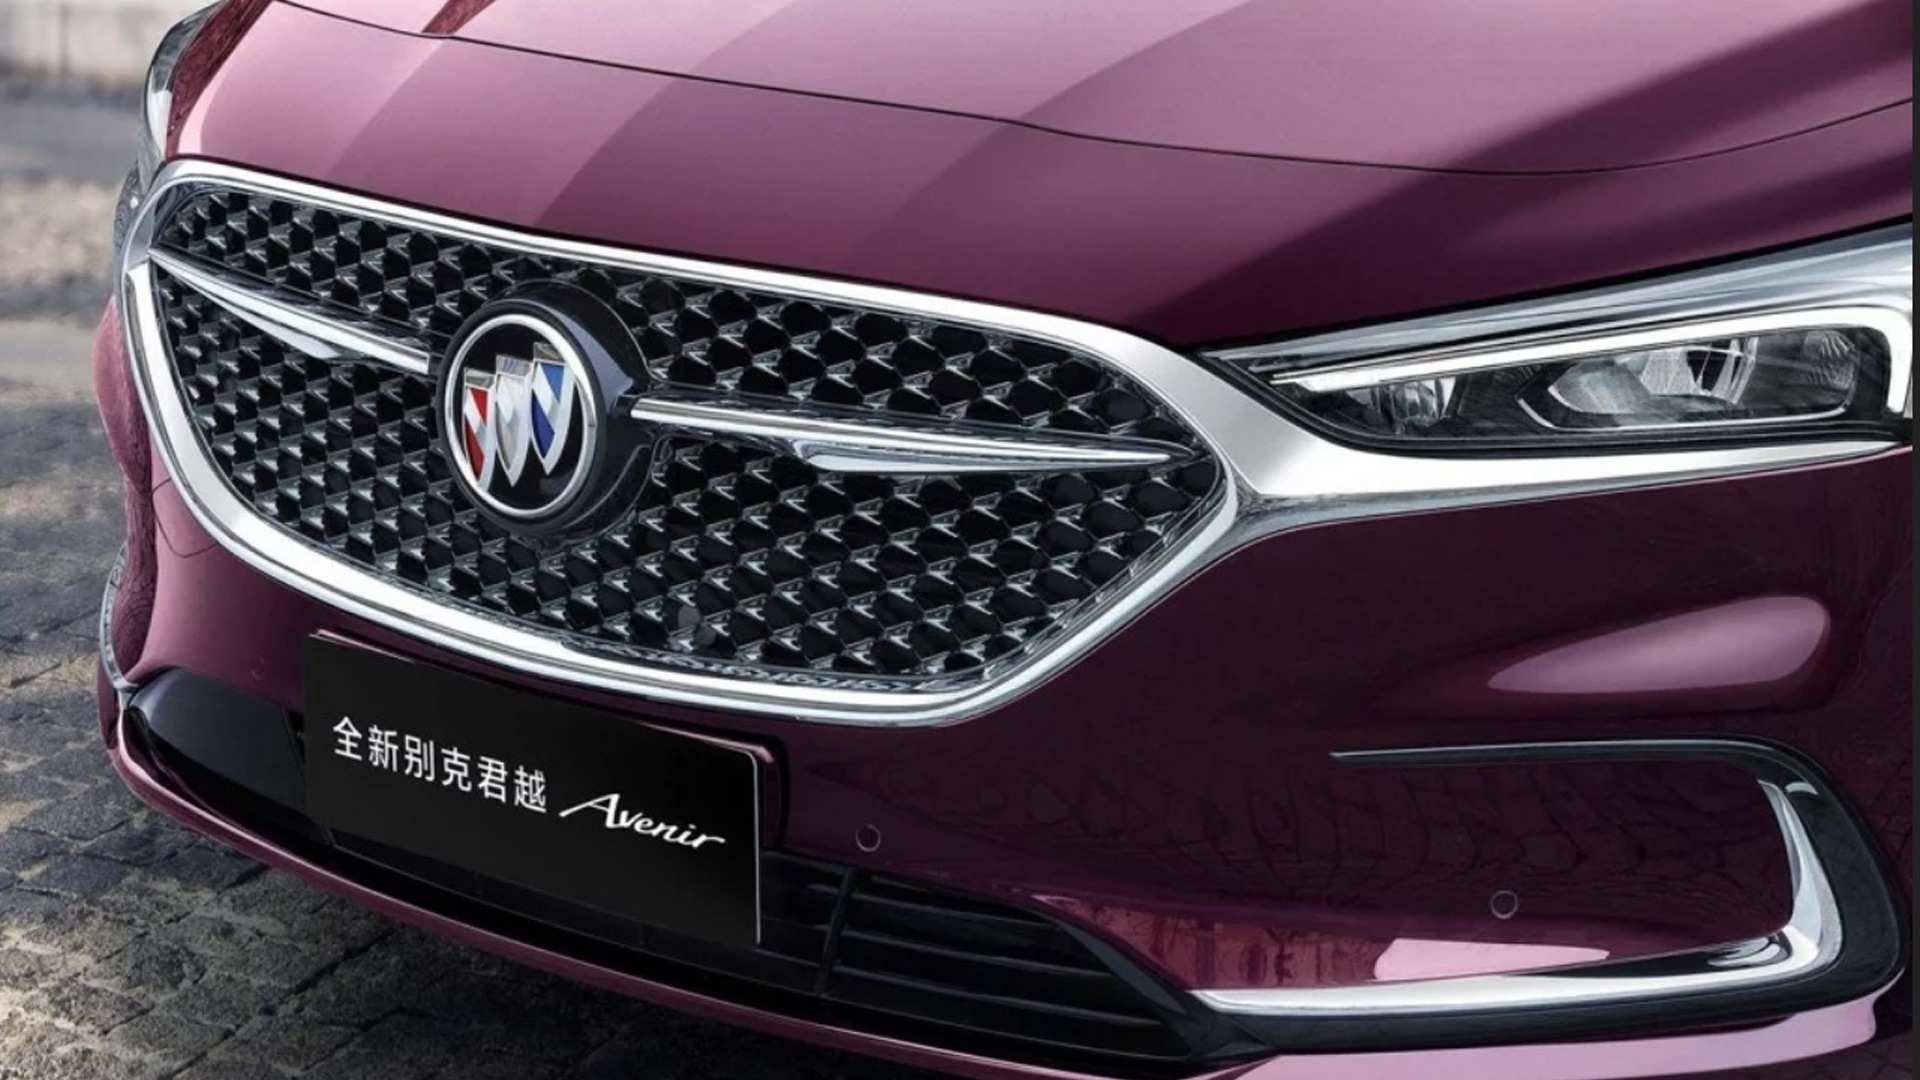 29 All New Buick Lacrosse For 2020 Price Design And Review